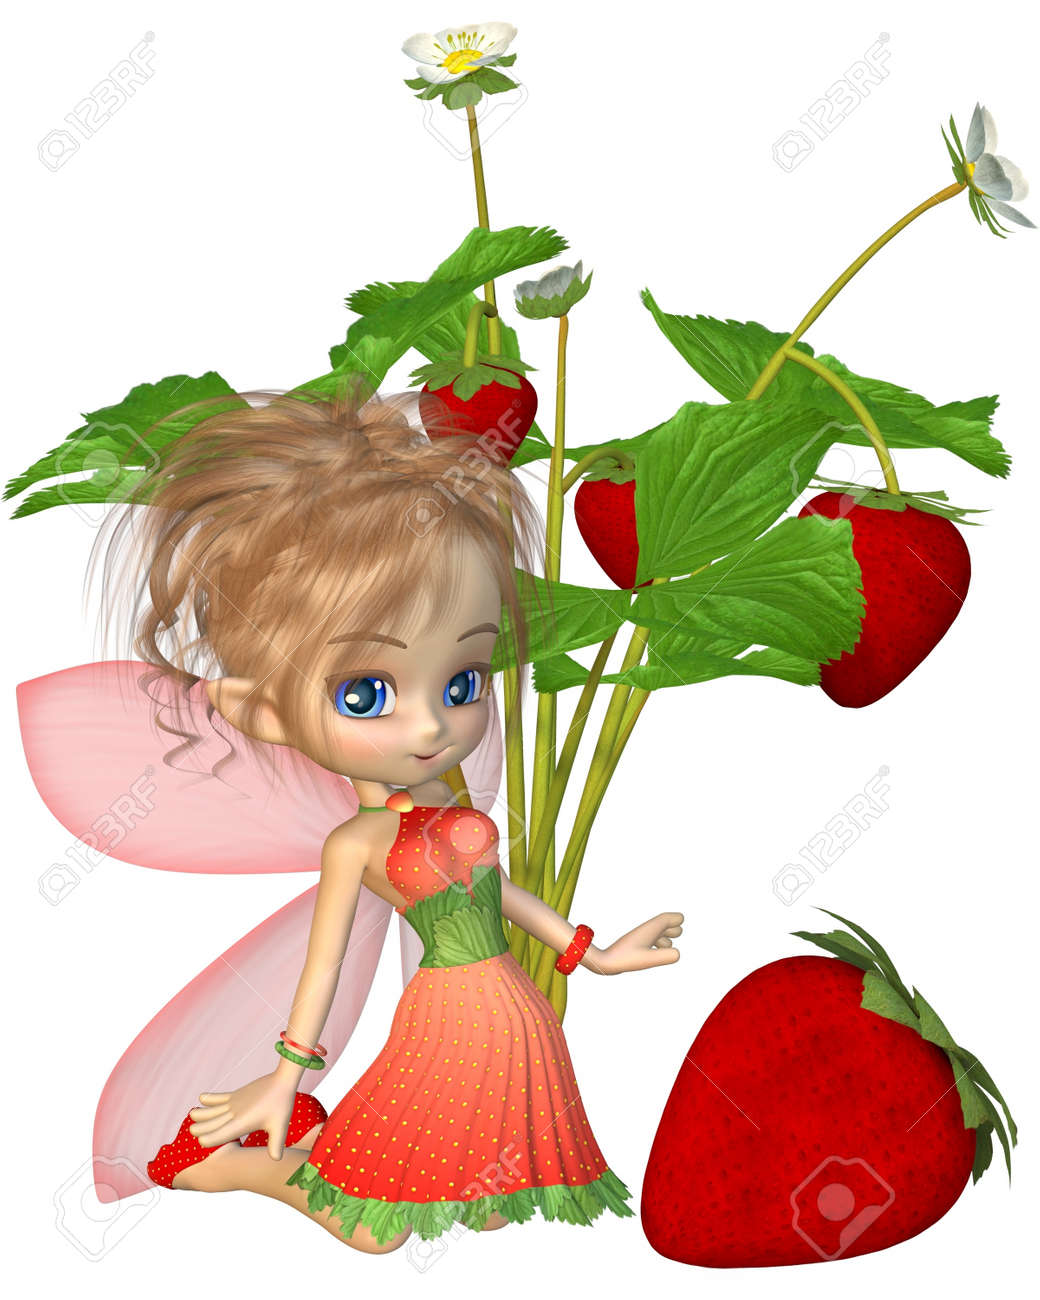 cute toon strawberry fairy with strawberry plant and fruit 3d